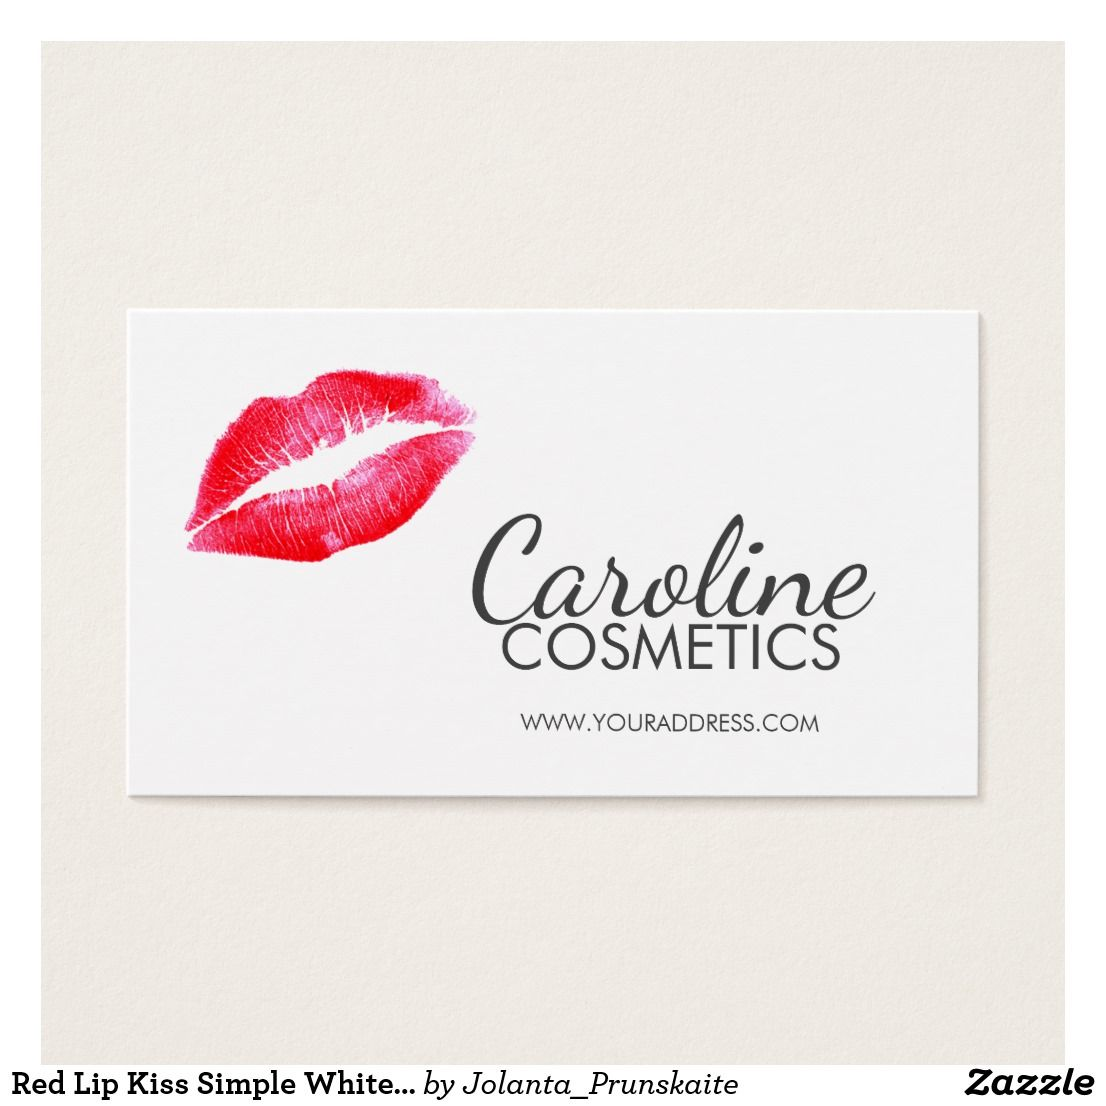 Red Lips Icon Simple White Cosmetics Business Card | Pinterest ...